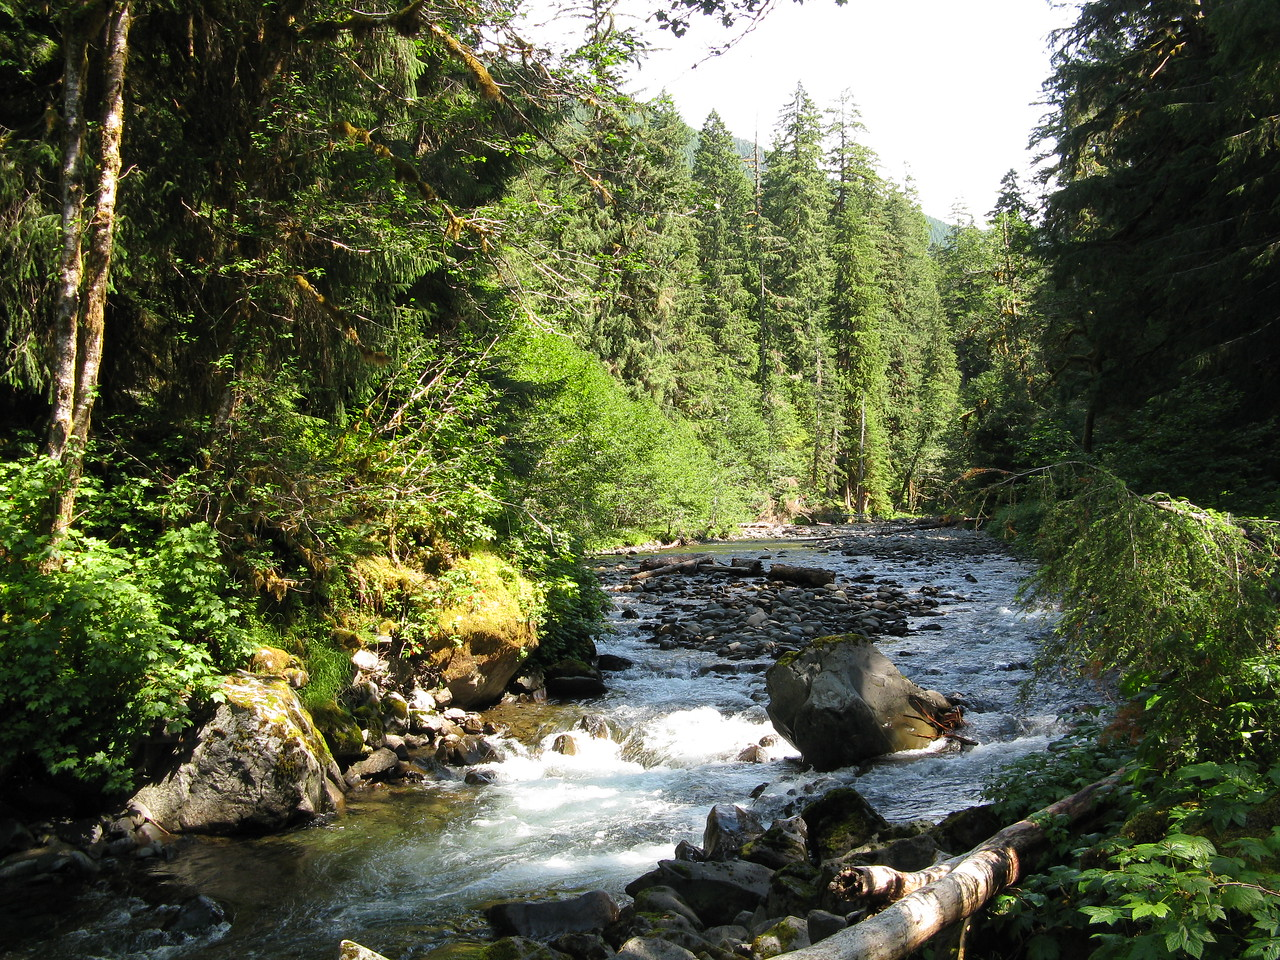 Sol Duc River from Lovers Lane Trail.